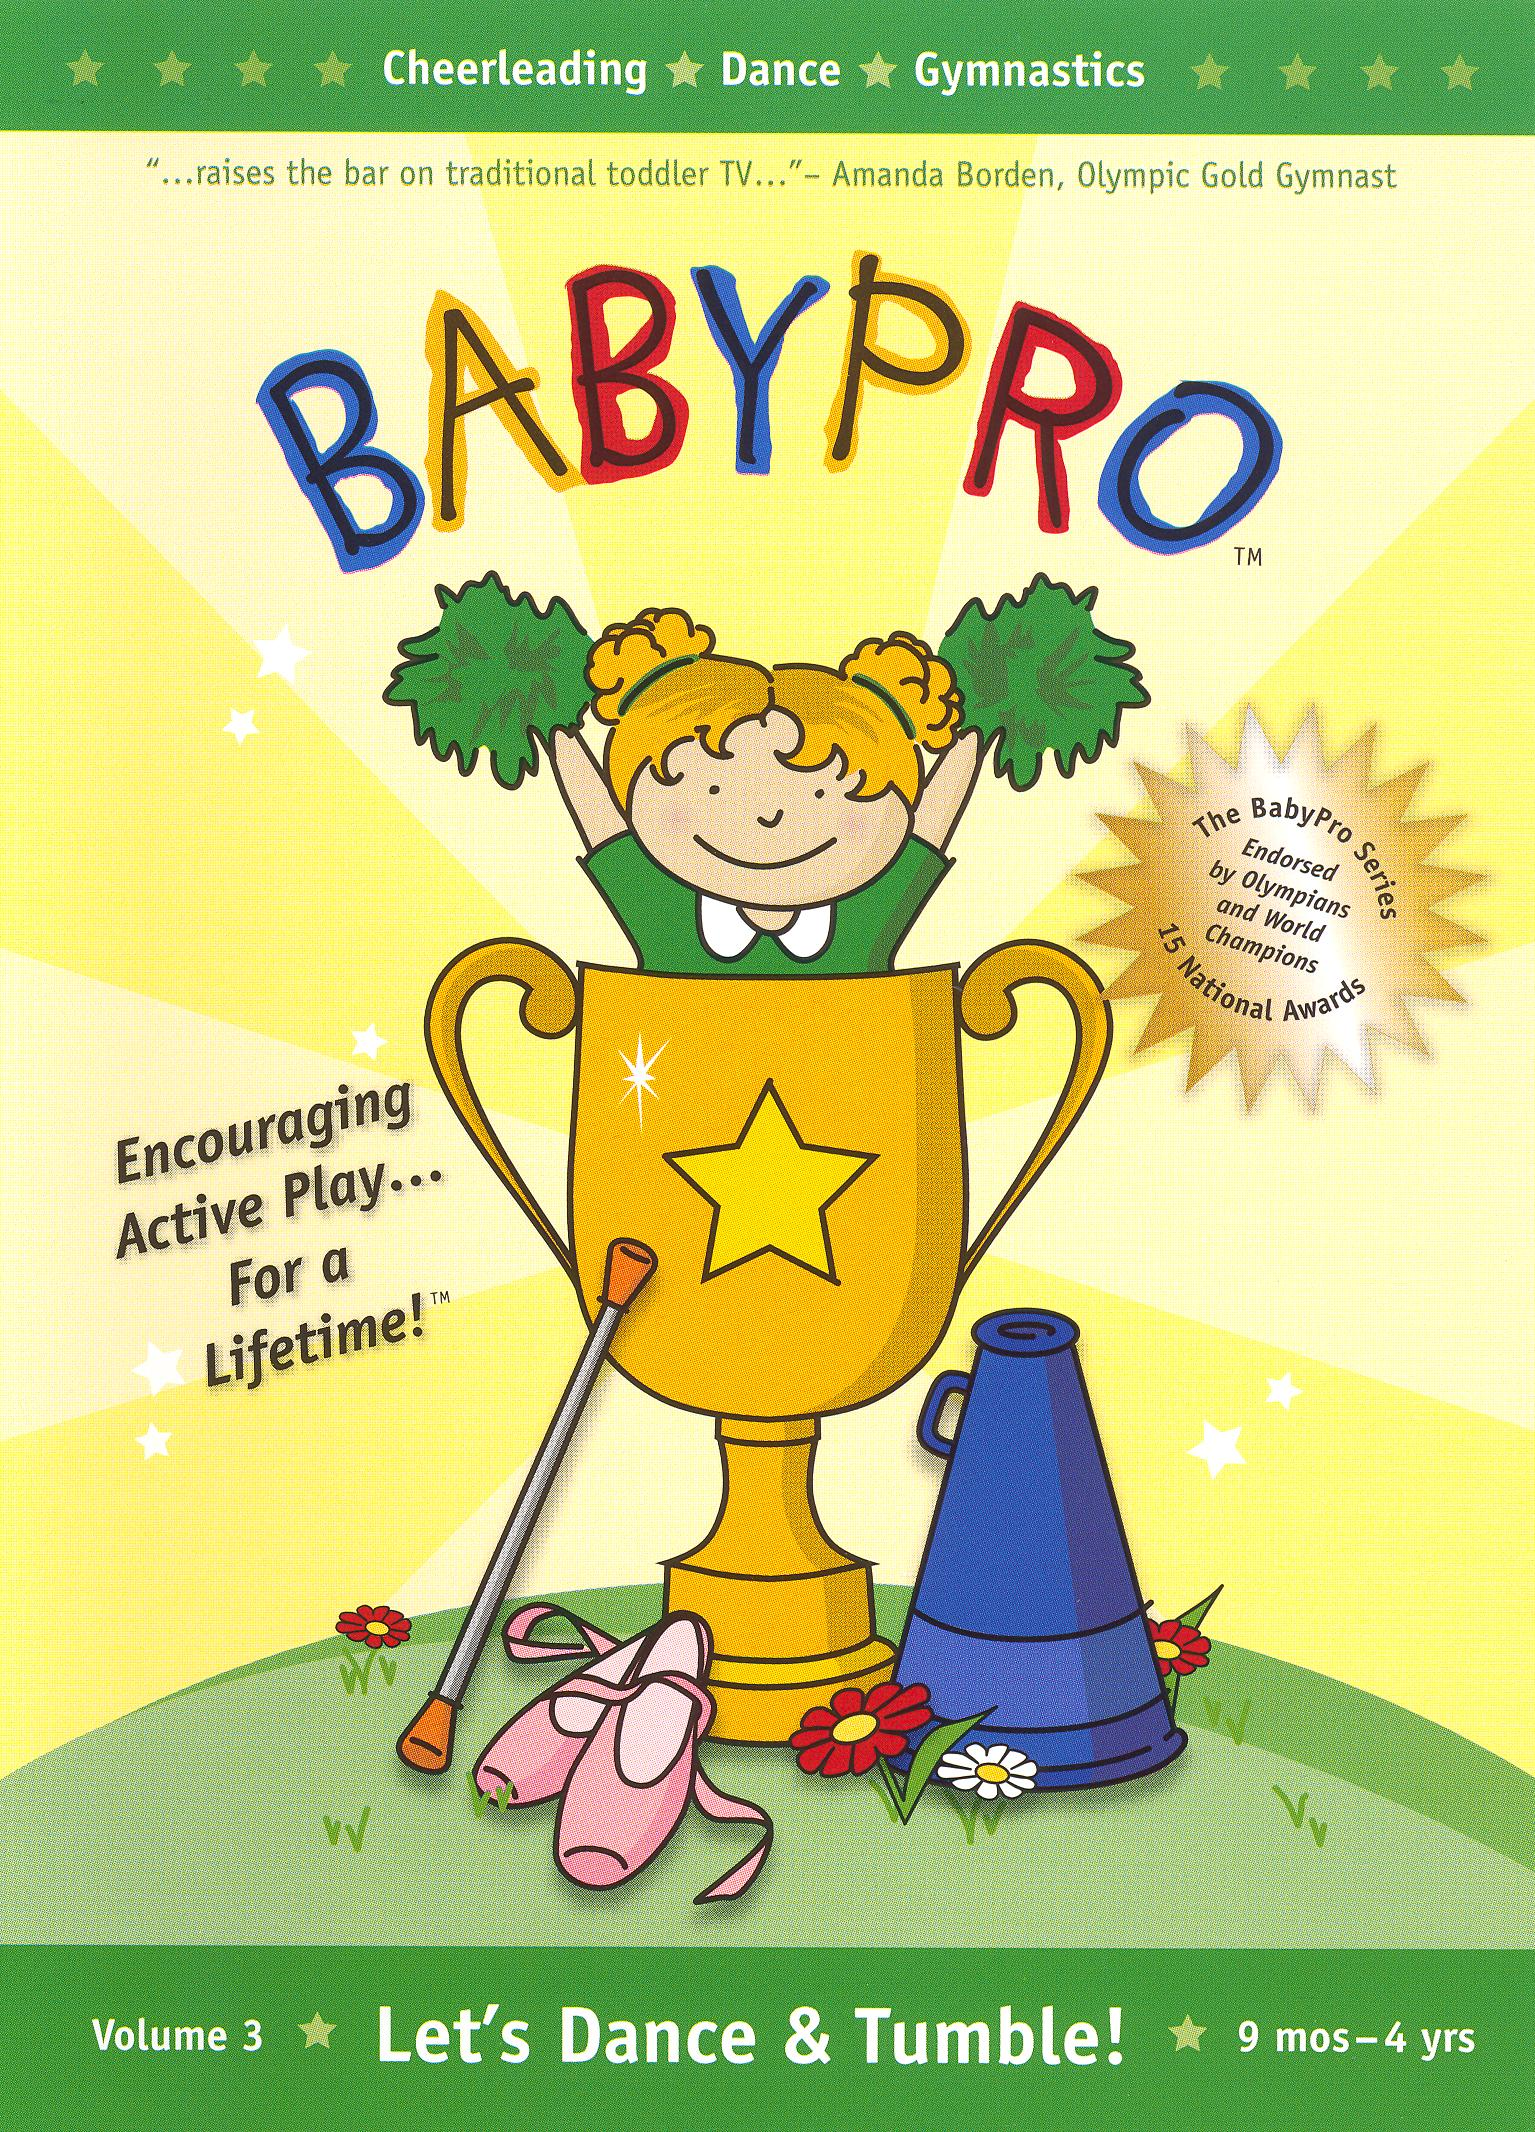 Babypro: Let's Tumble and Dance